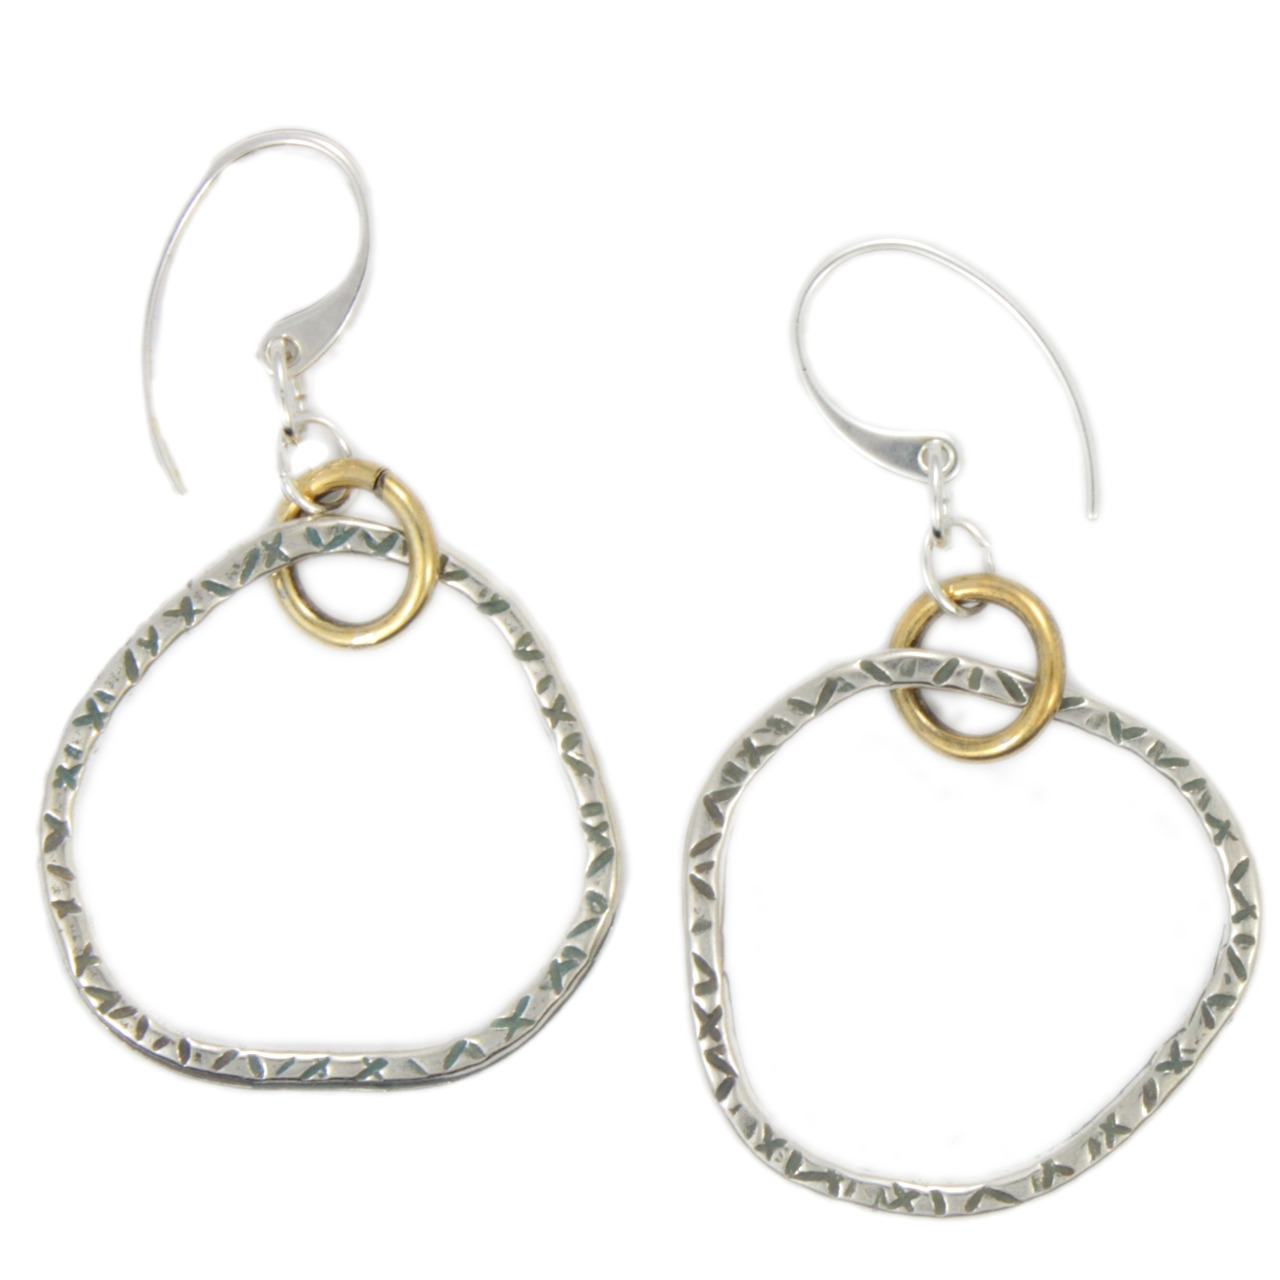 Fun Hoop Earrings